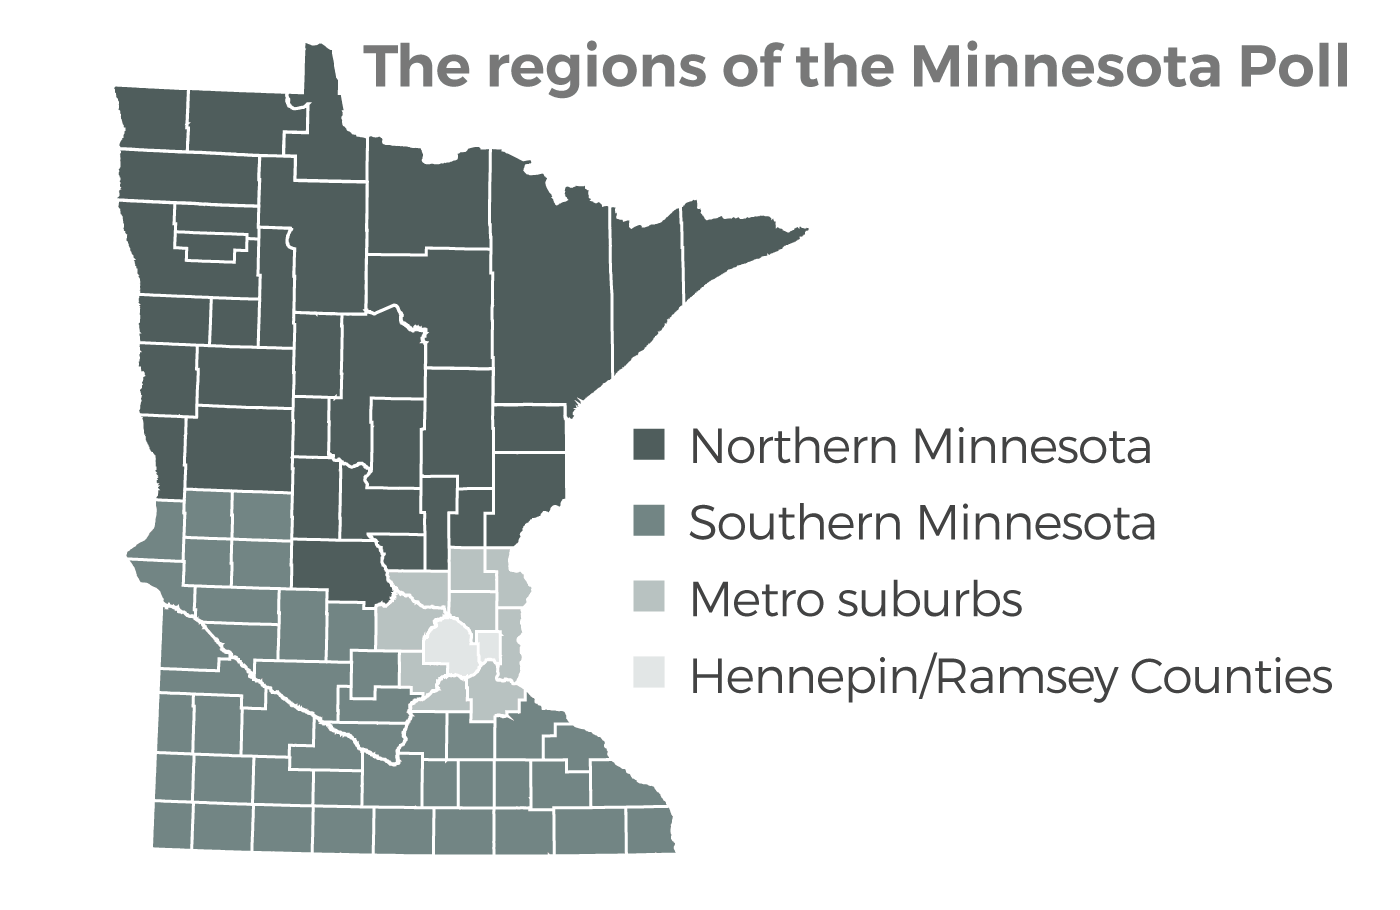 Regions surveyed for MPR News | Star Tribune Minnesota Poll   Graphic: William Lager | MPR News.